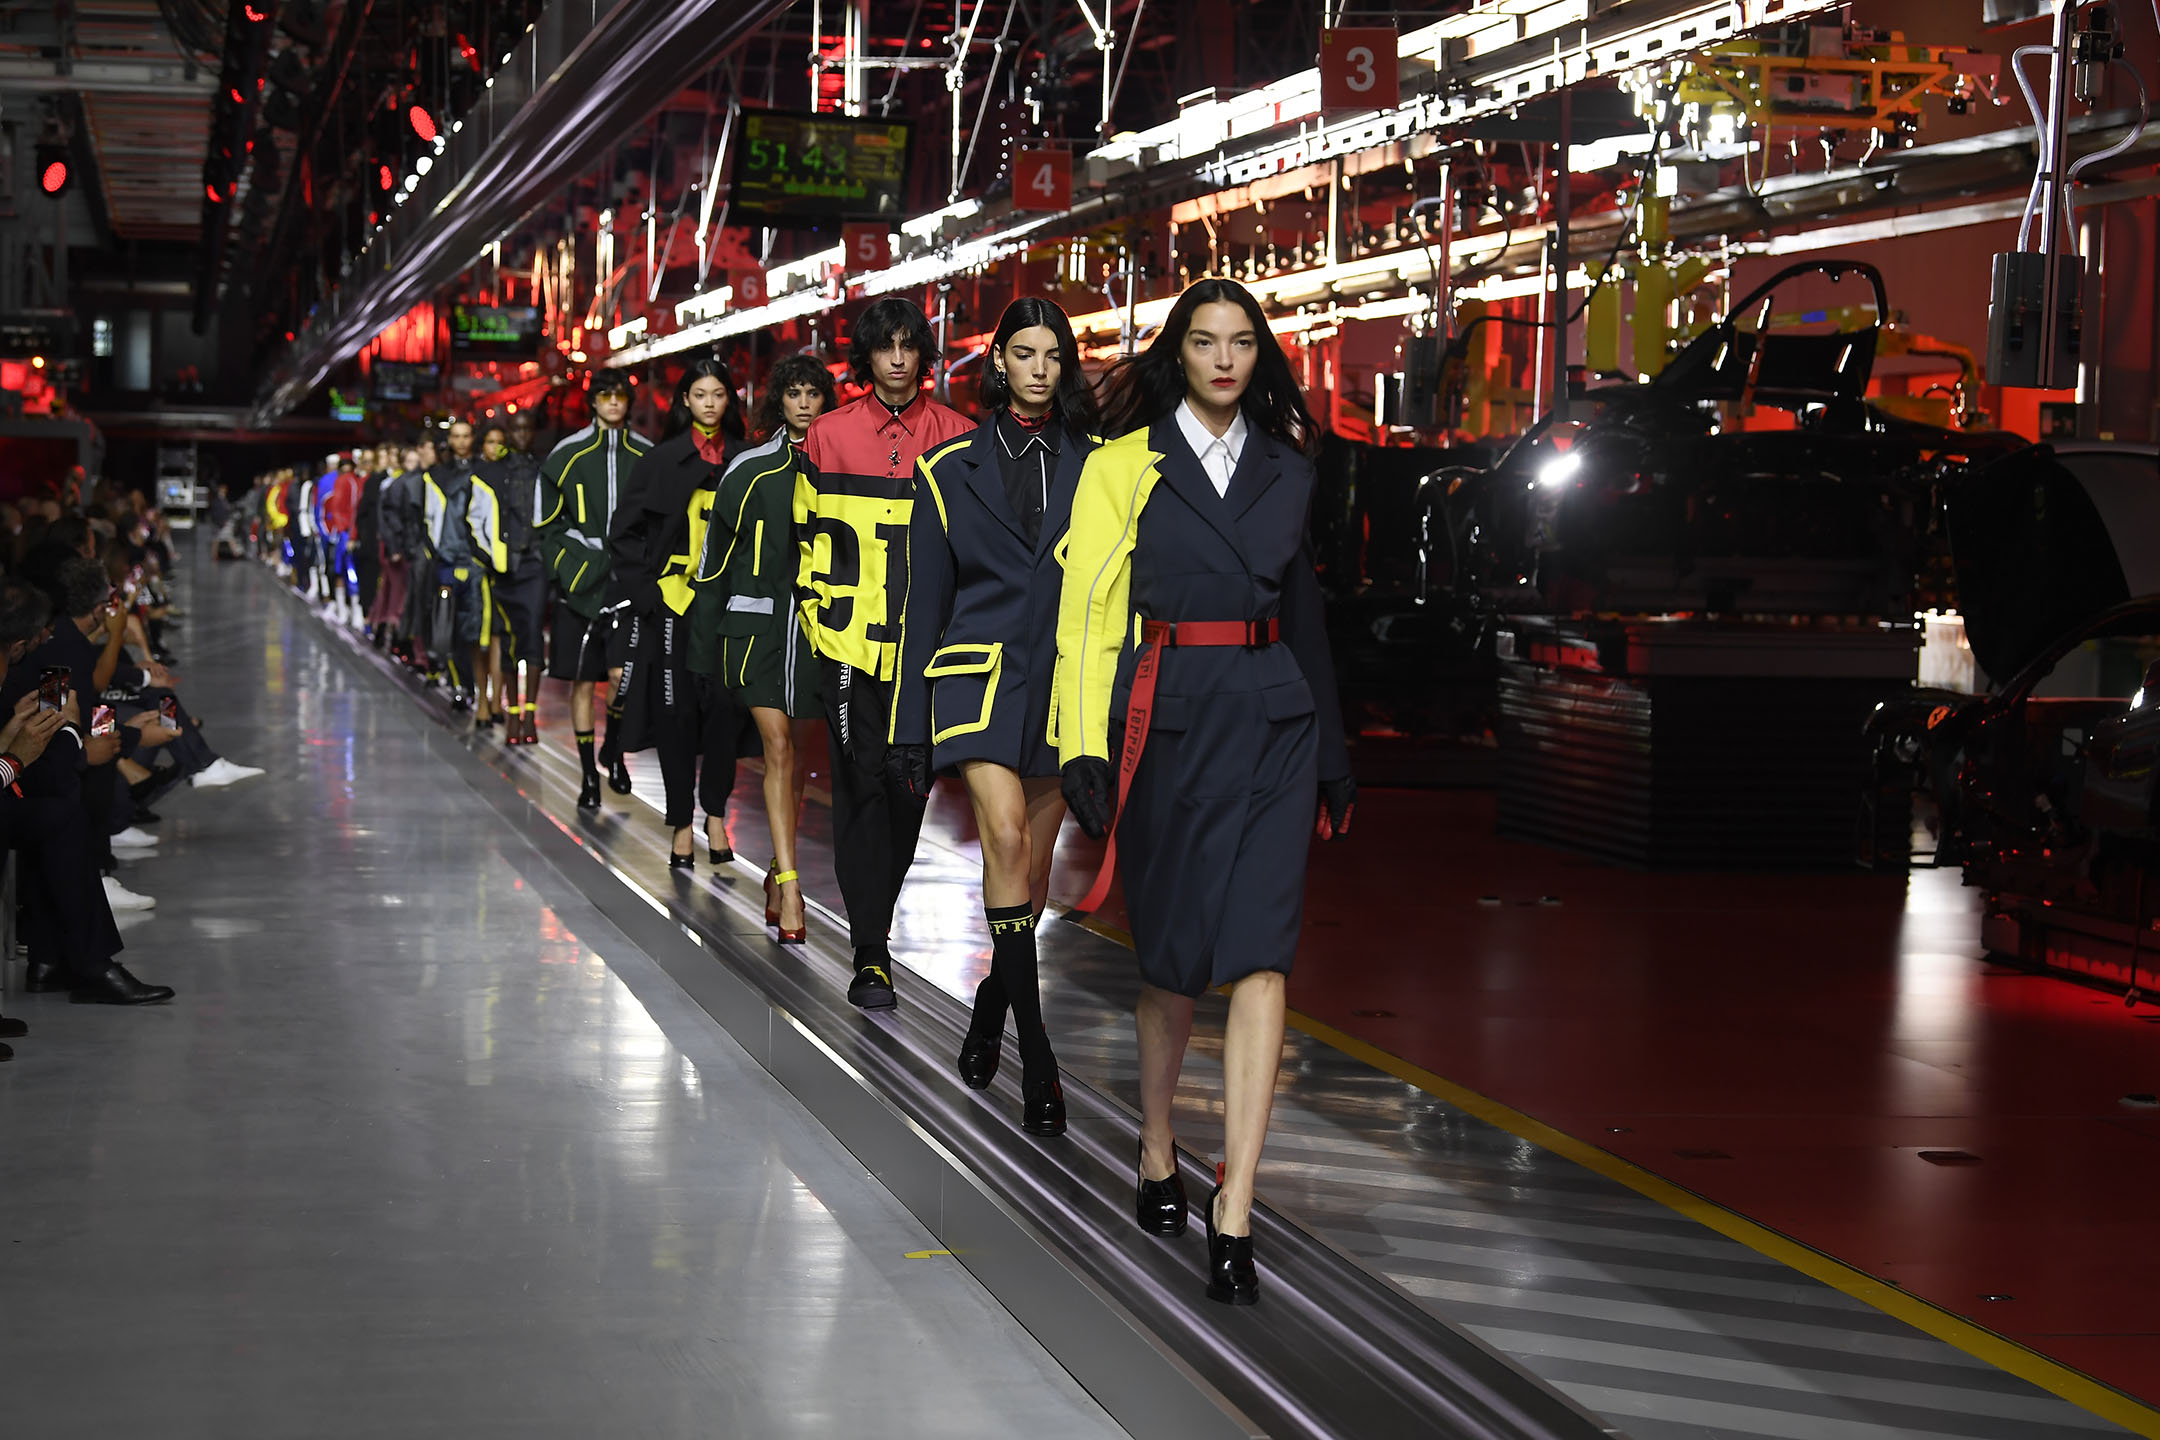 Ferrari now triumphs in the runway, check out their new fashion drop Ferrari now triumphs in the runway, check out their new fashion drop Vanity Teen 虚荣青年 Lifestyle & new faces magazine